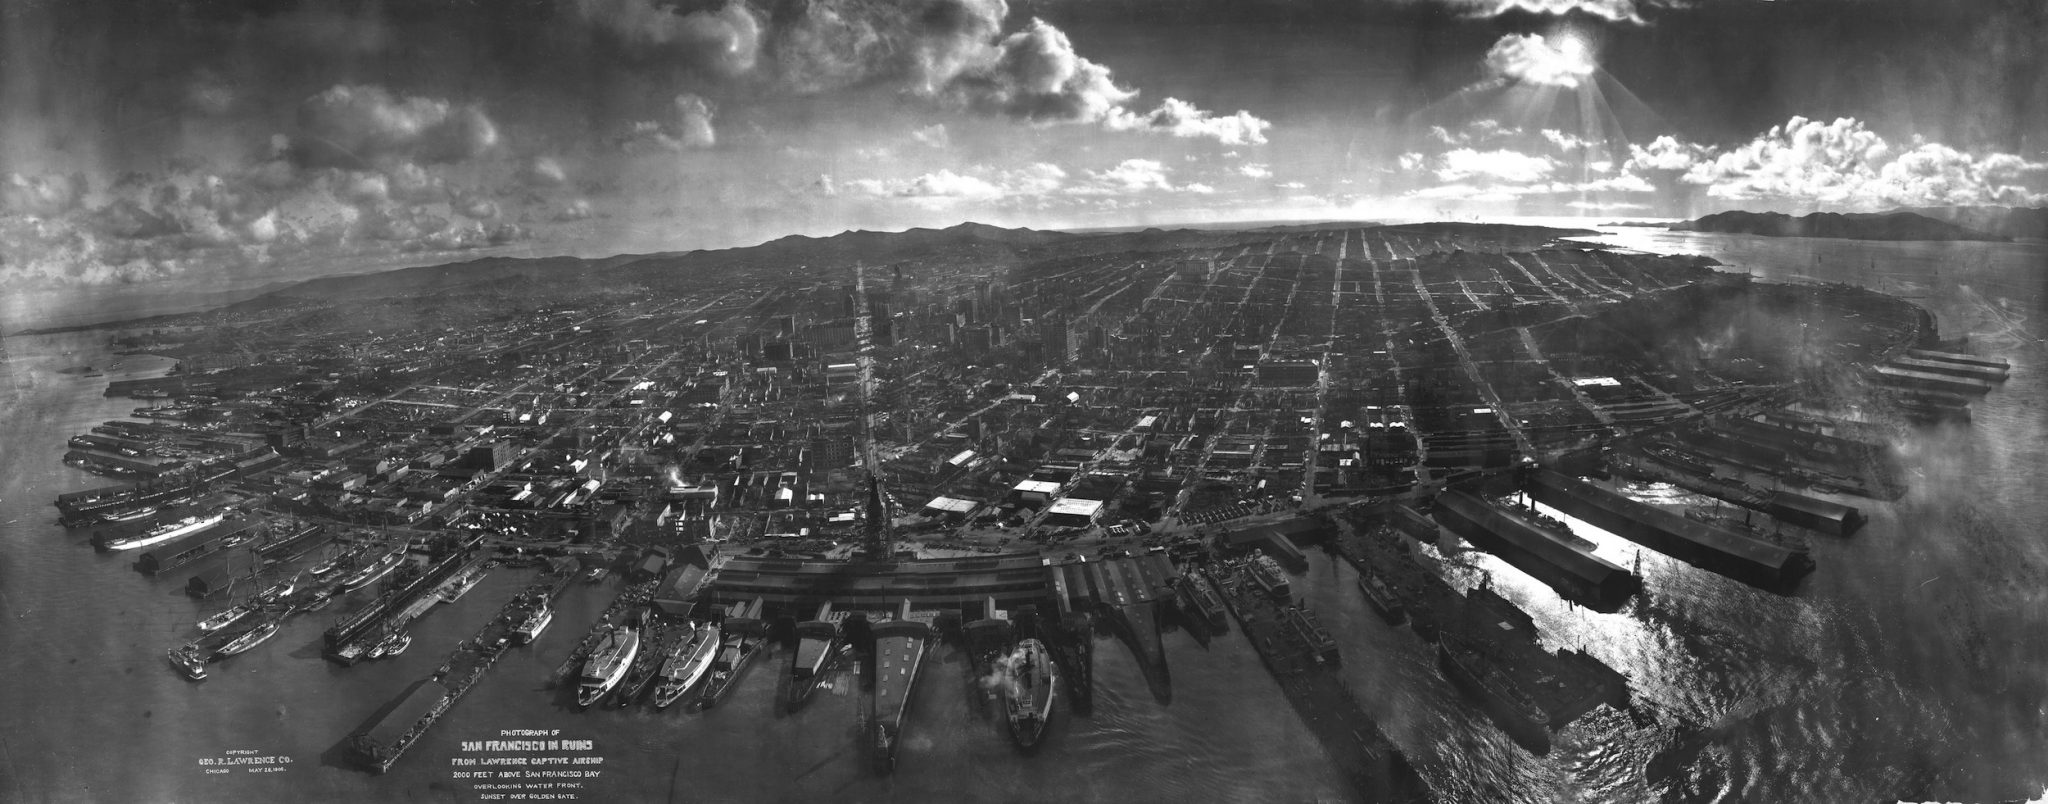 San_Francisco_in_ruins_from_Lawrence_Captive_Airship_1906